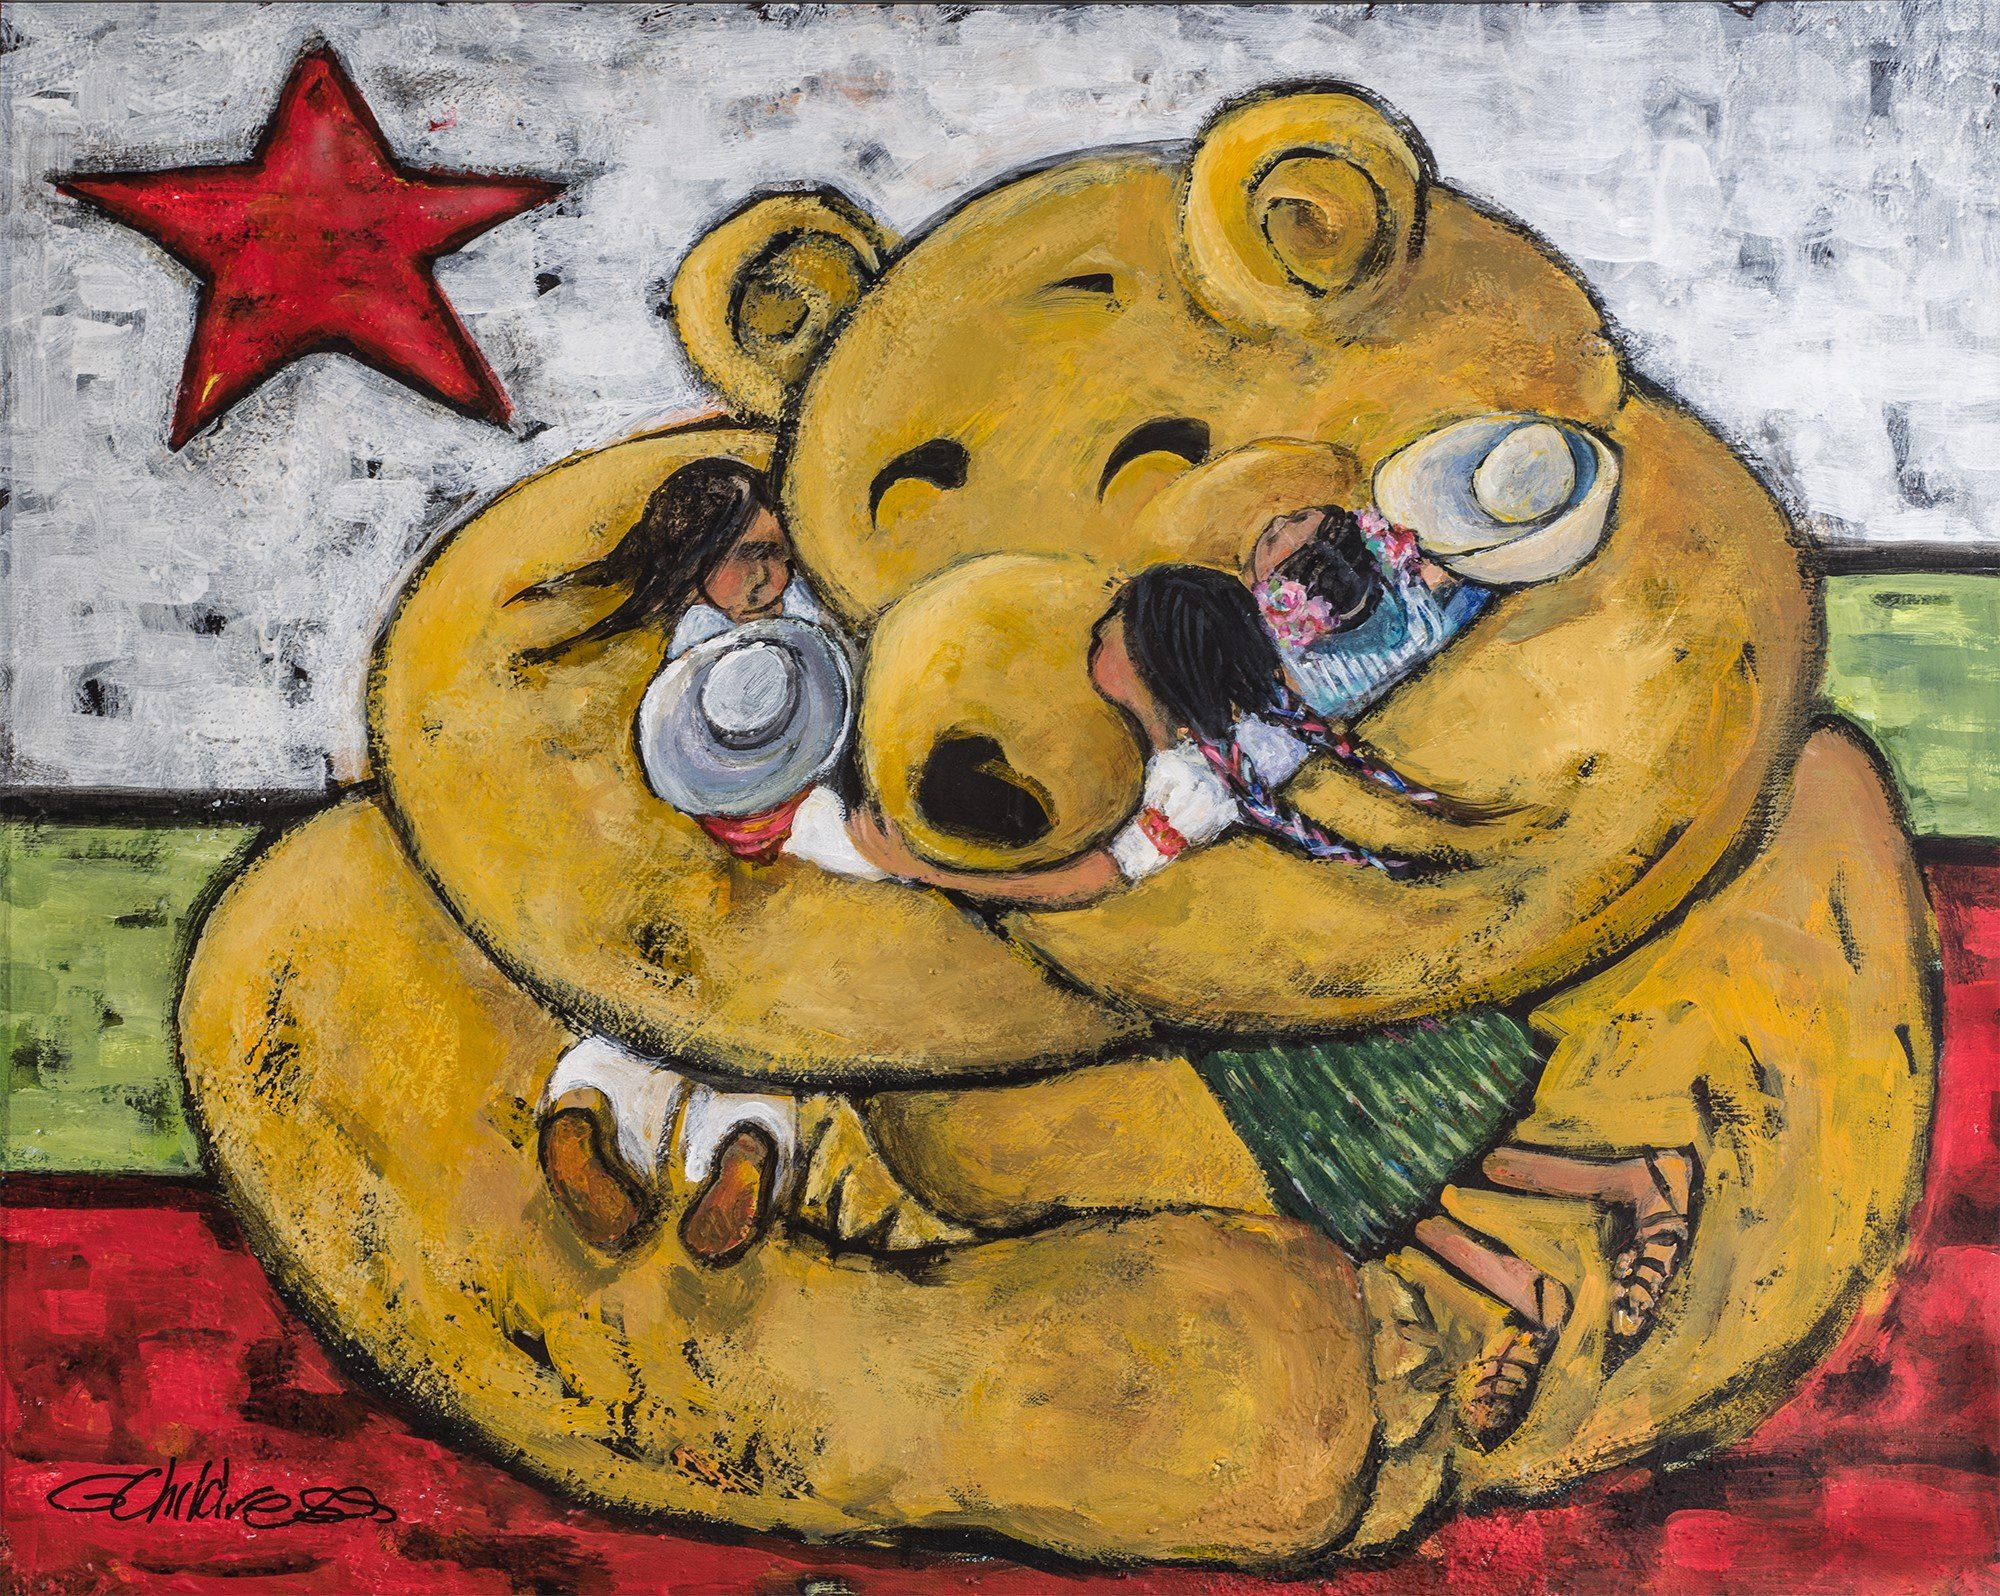 Gayel Childress California Hugs from My Favorite Things Series, acrylic